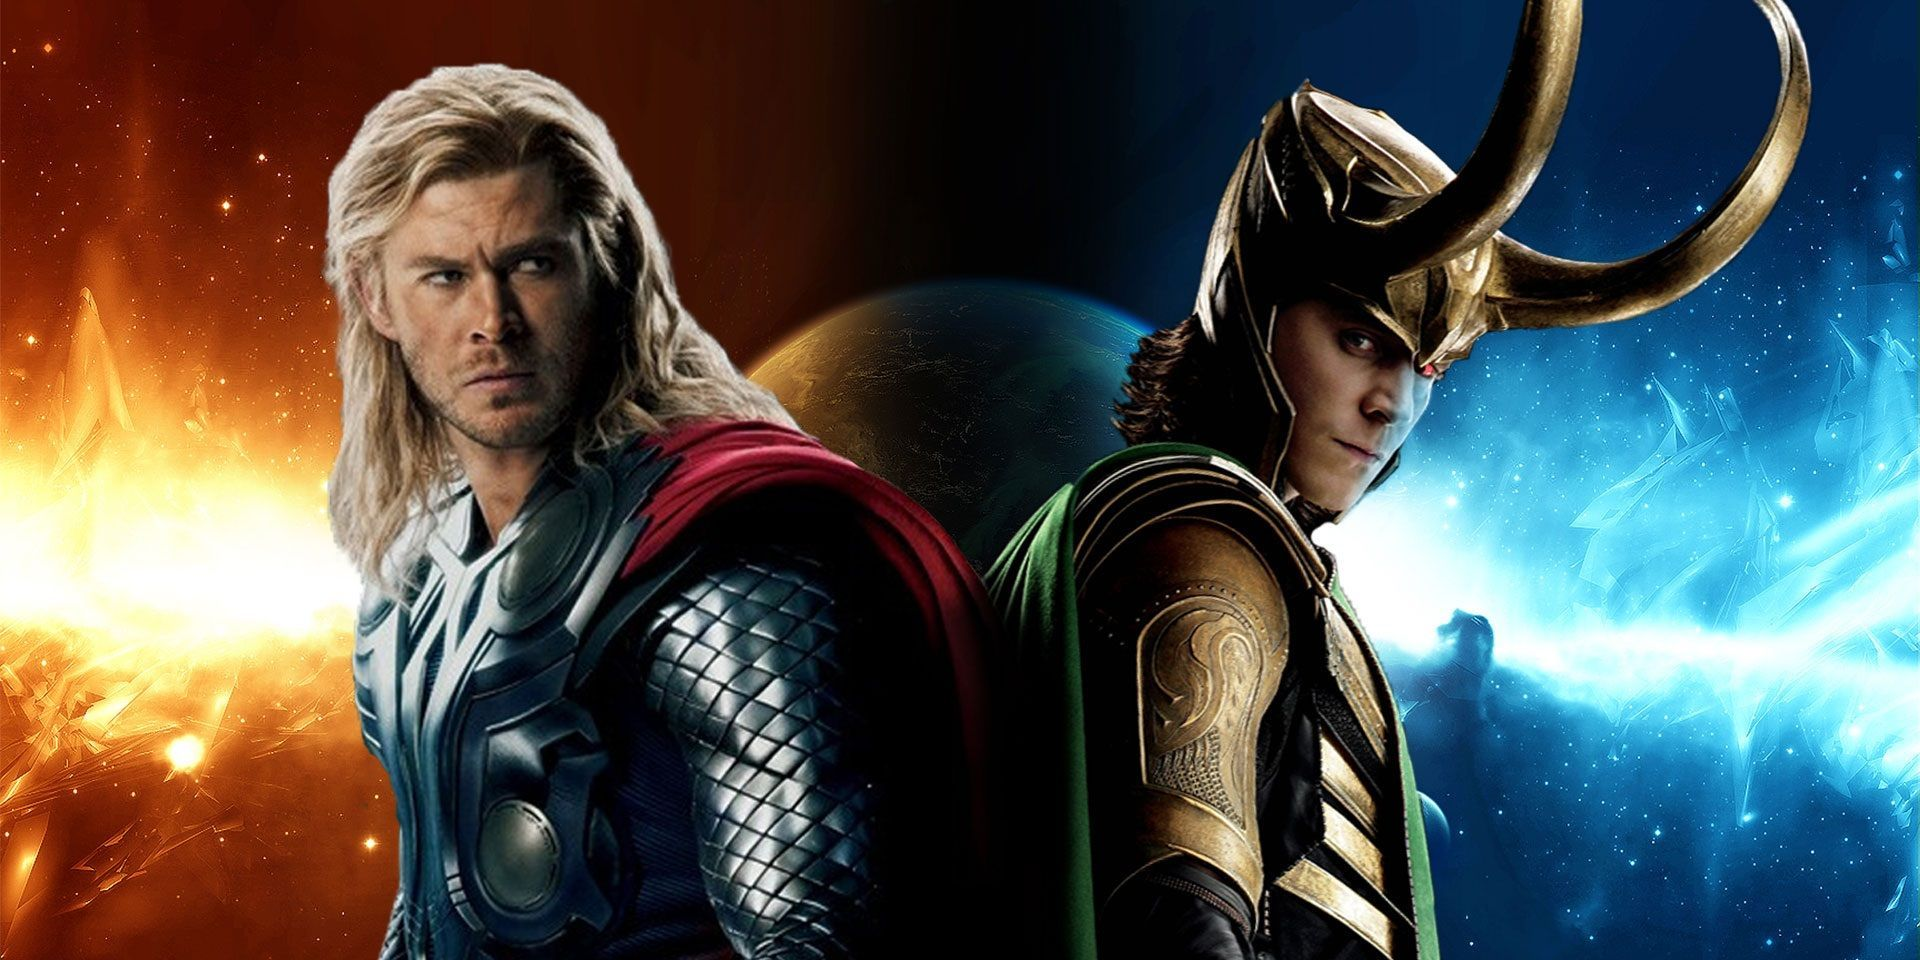 20 Things About Thor And Loki's Relationship That Make No Sense